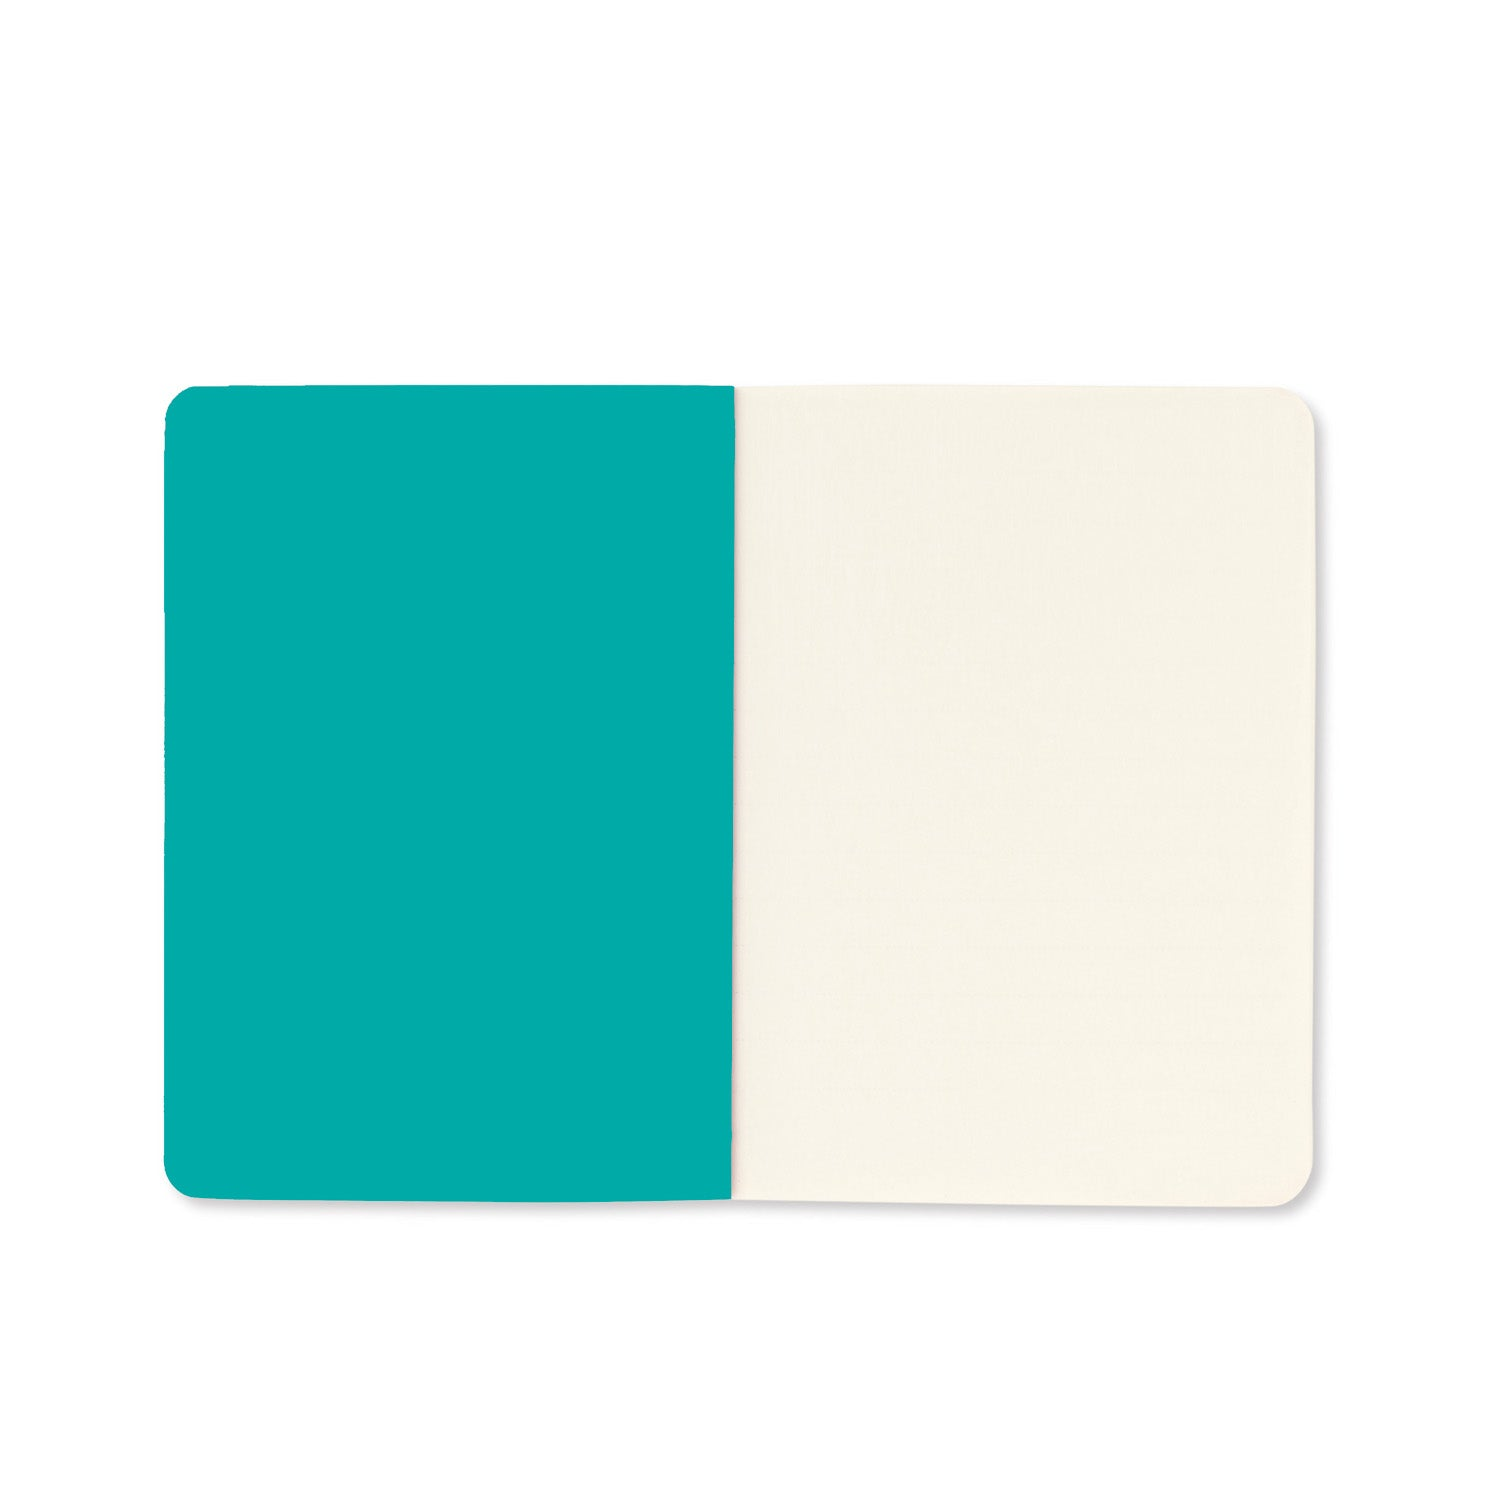 Shimmer Teal Set of Three A6 Notebooks - MissieMay